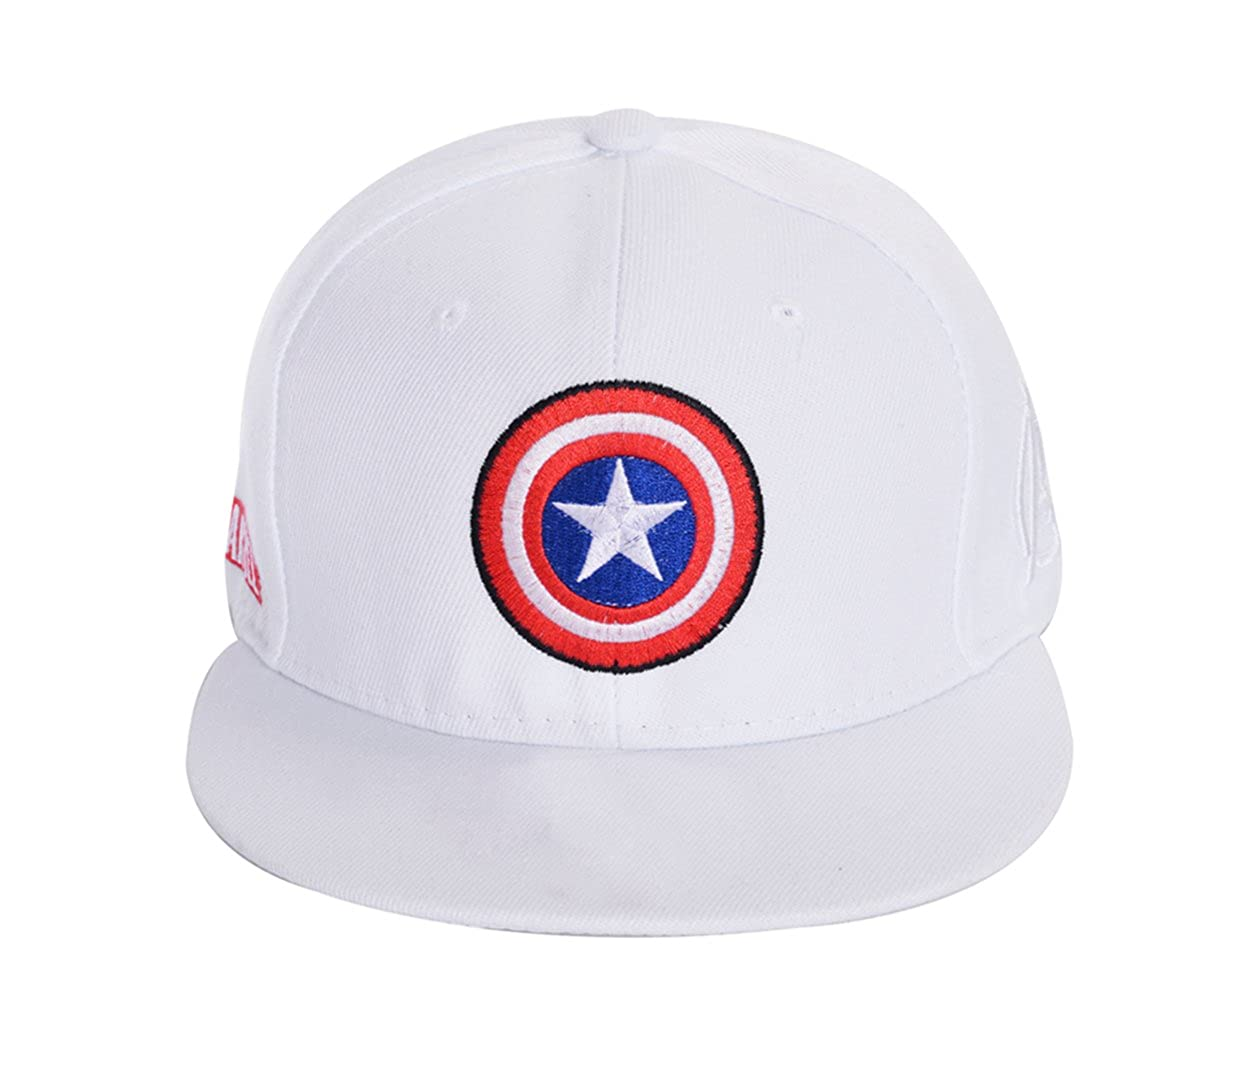 5395788ec721d Amazon.com  REINDEAR Marvel Avengers Captain America Shield Hat Baseball Cap  US Seller (Black)  Clothing